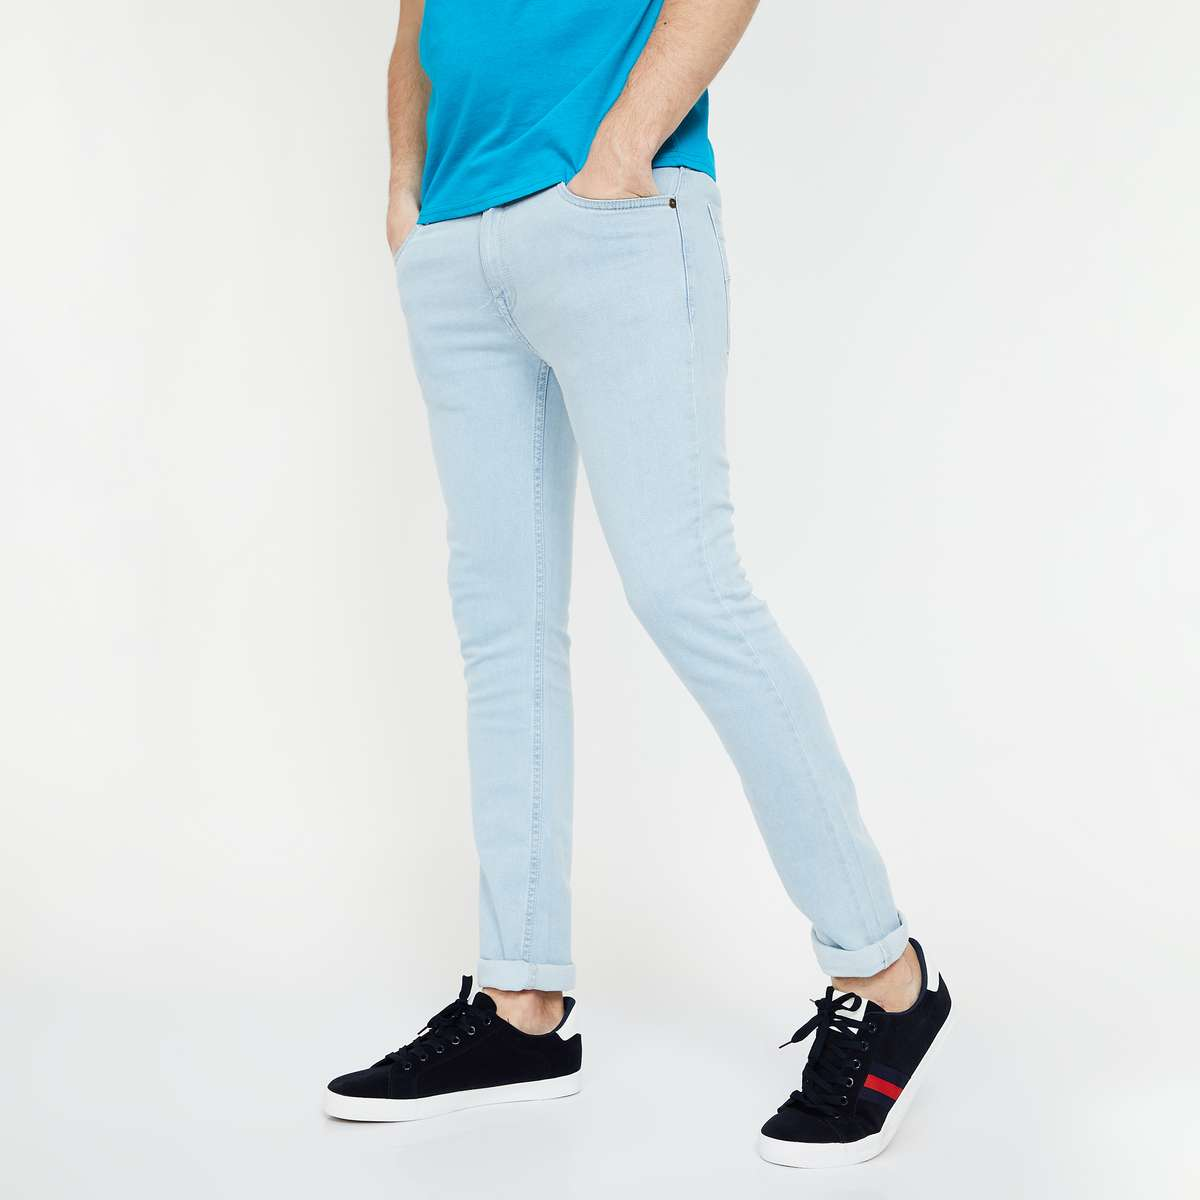 FORCA Solid Low-Rise Skinny Fit Jeans